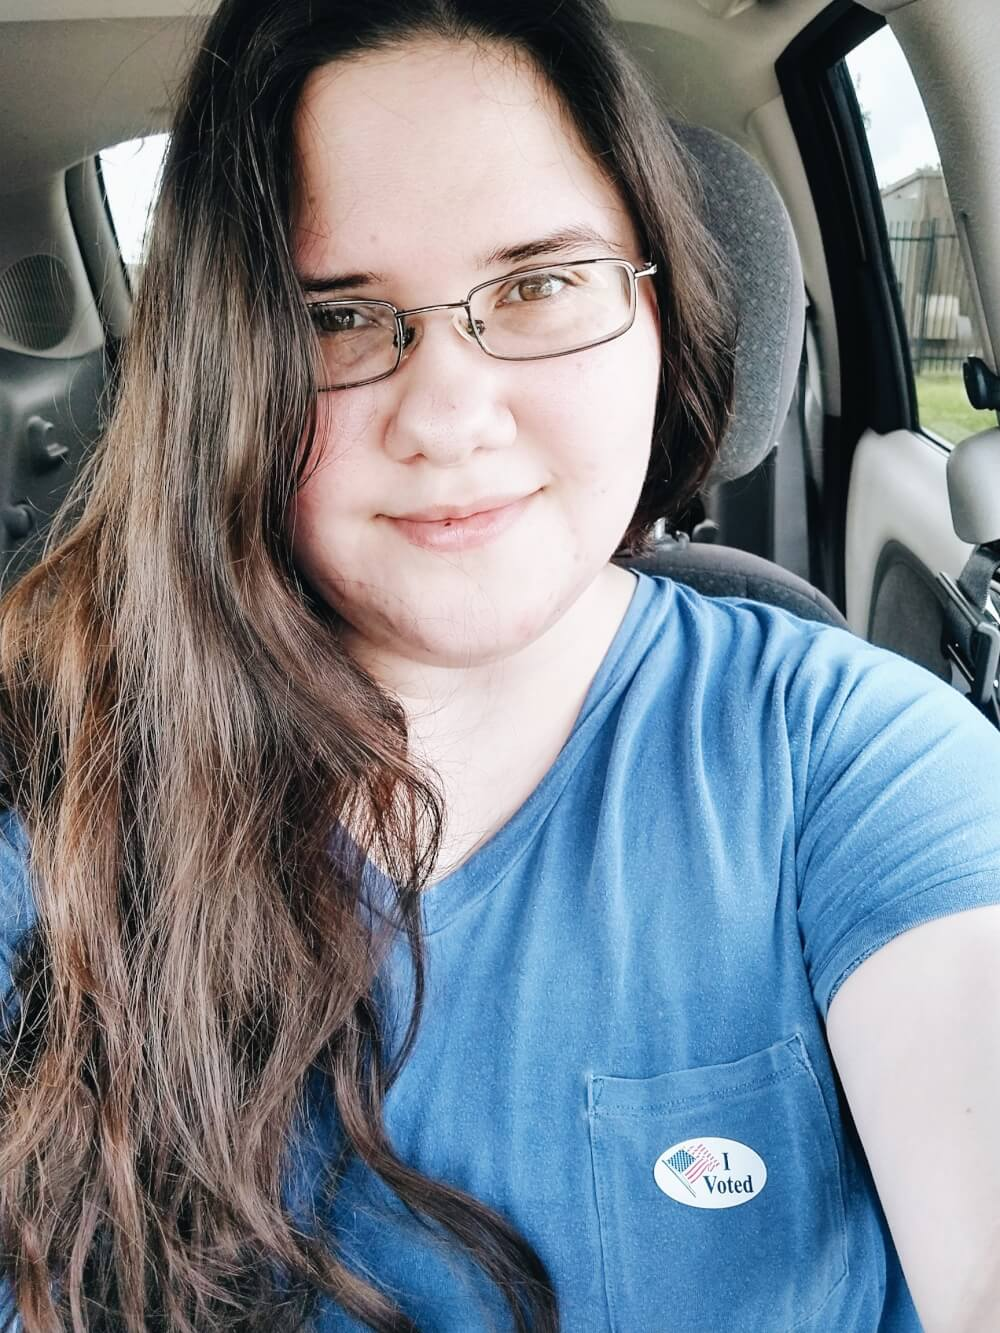 """Car selfie in blue top with """"I voted"""" sticker and wavy hair"""